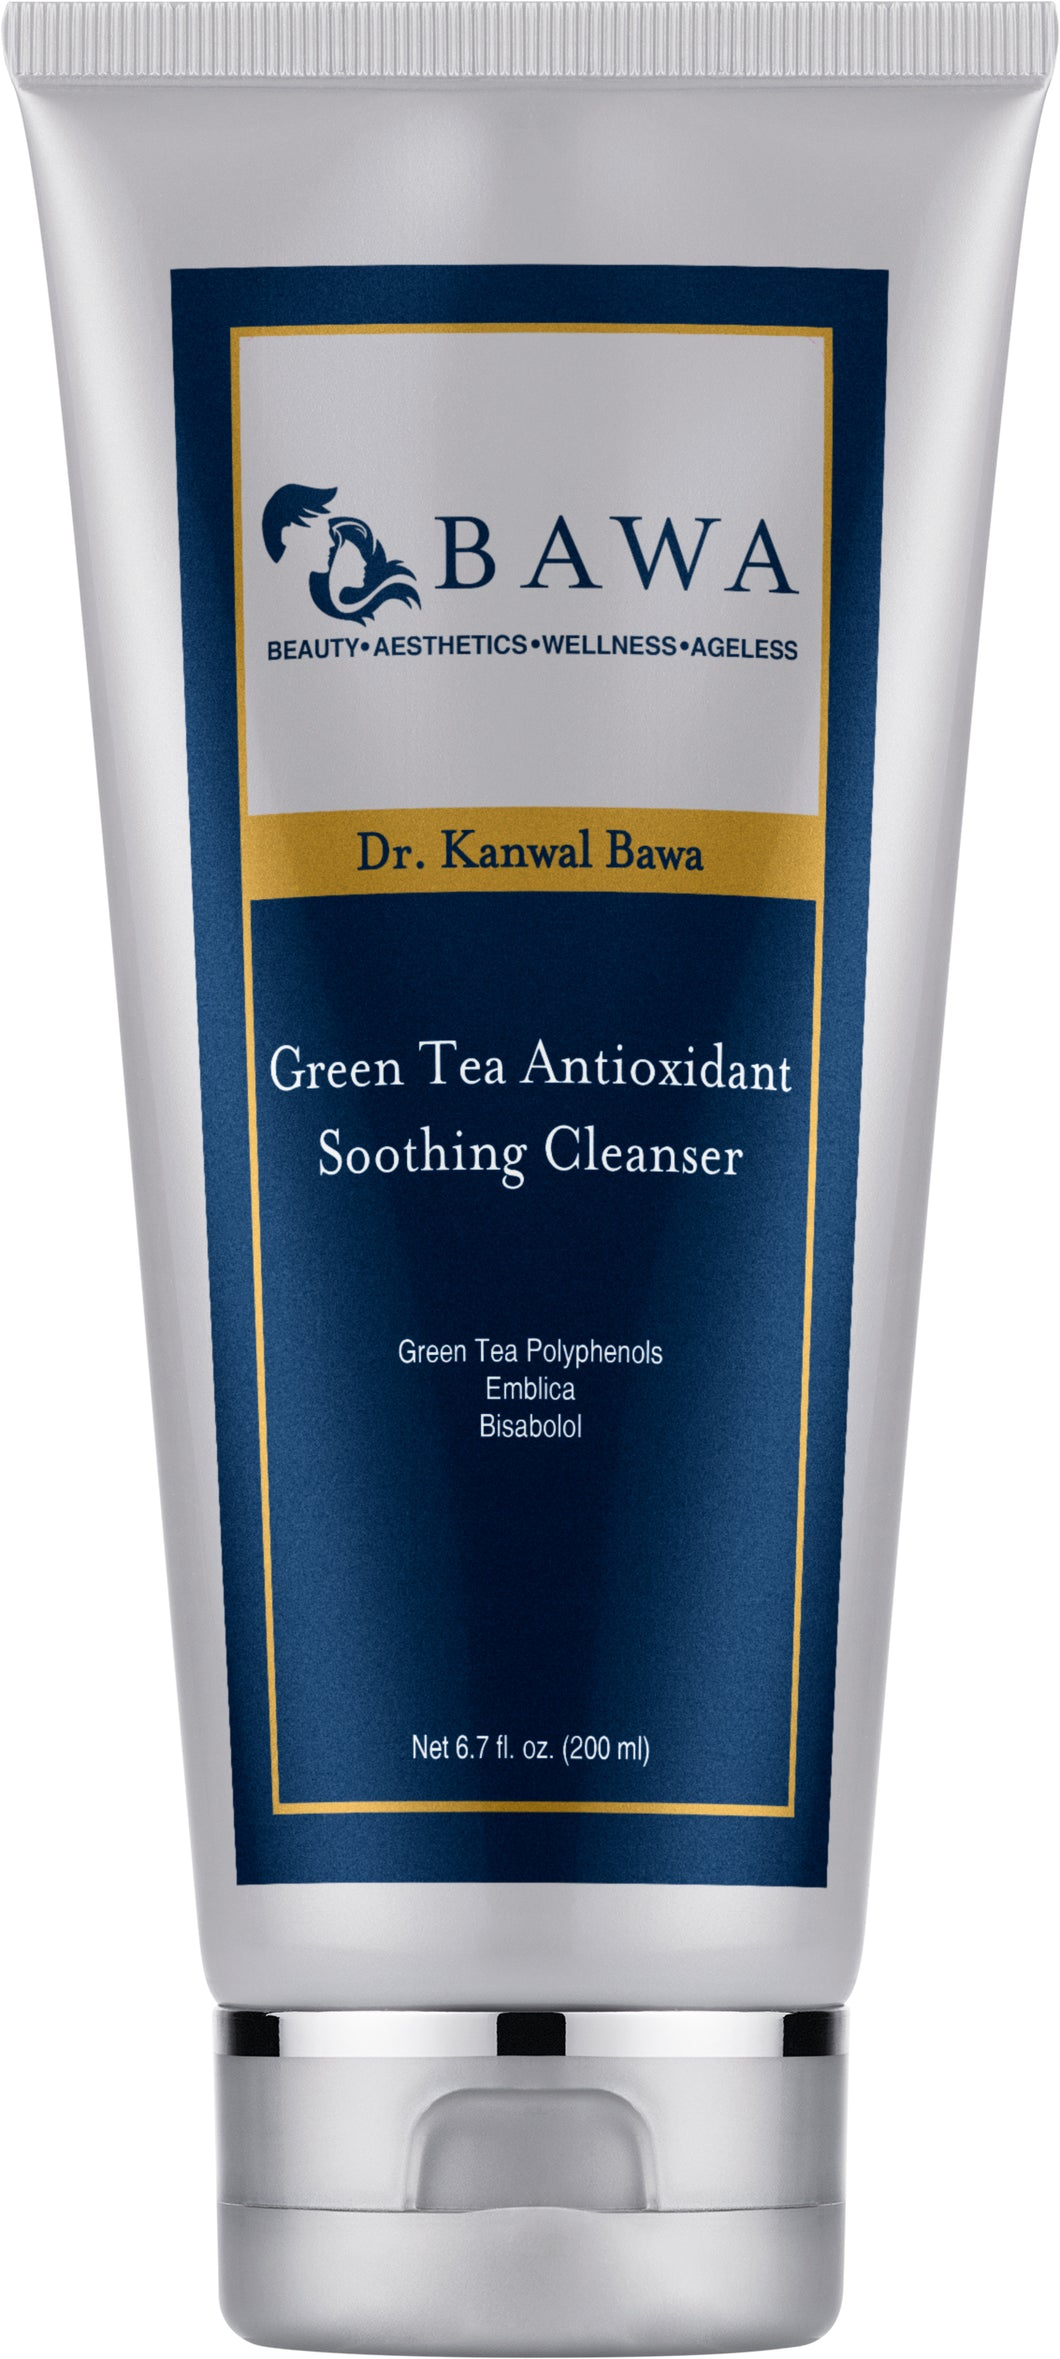 Green Tea Antioxidant Soothing Cleanser